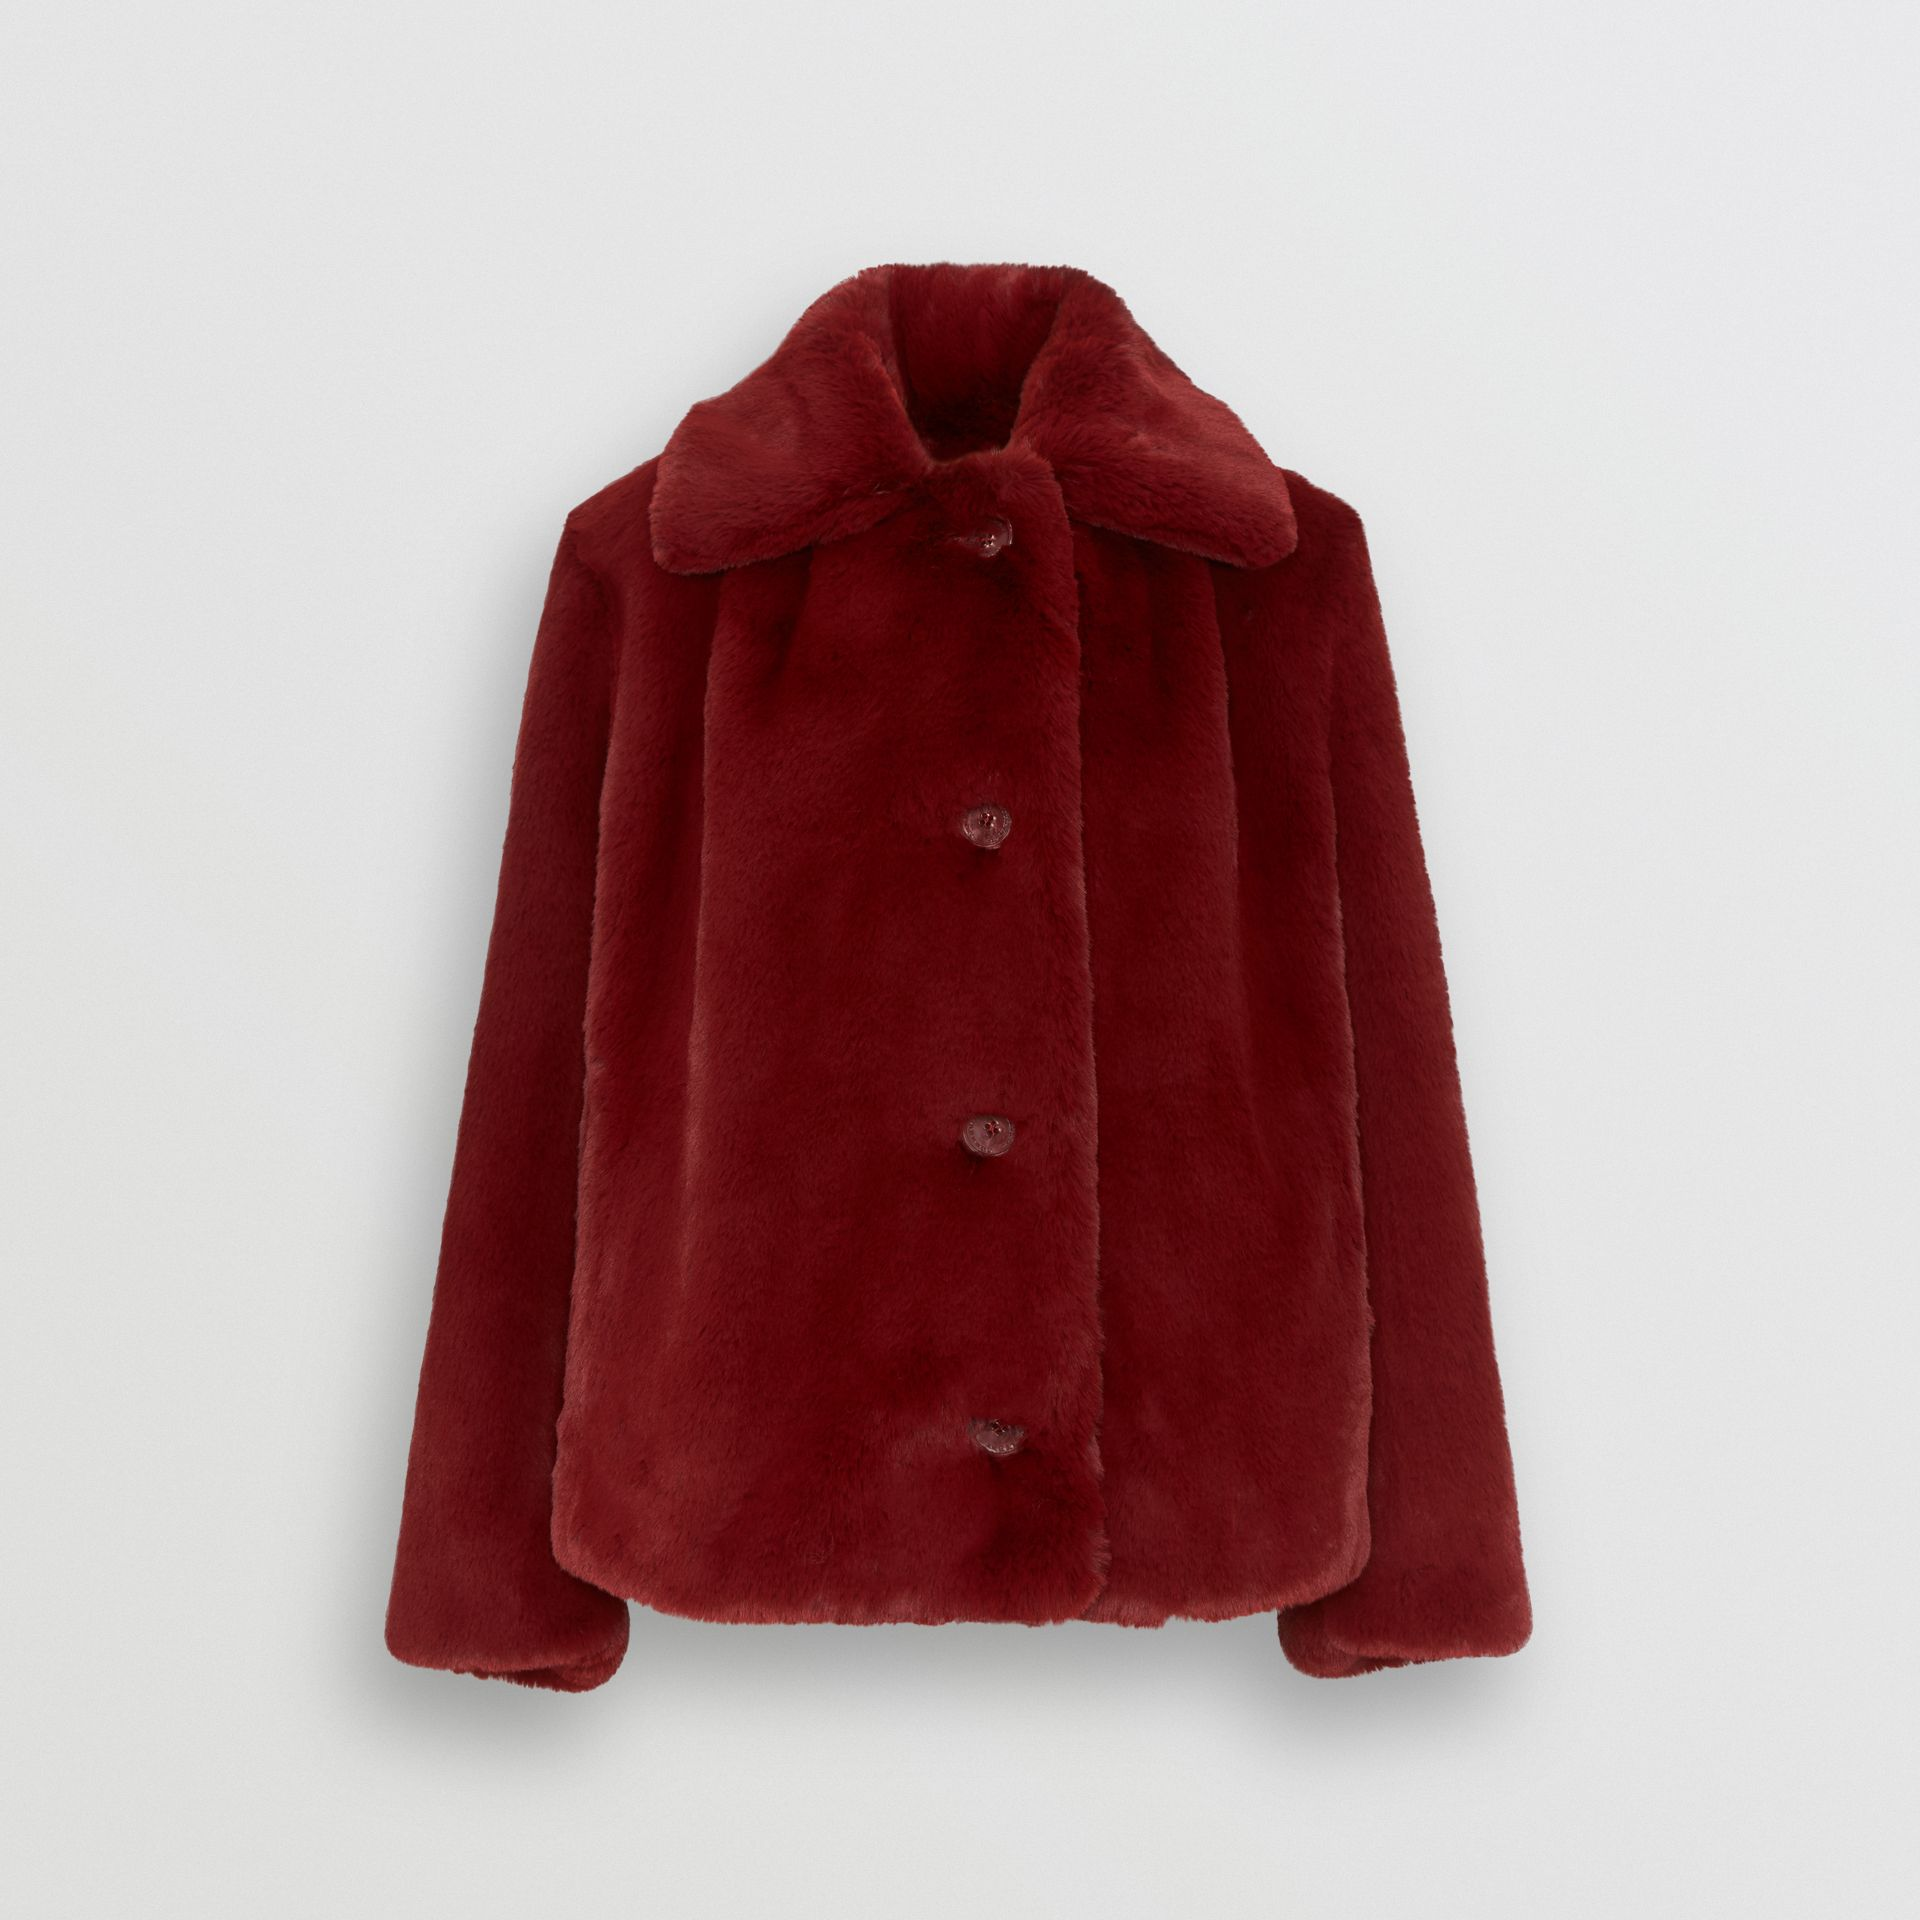 Faux Fur Single-Breasted Jacket in Burgundy - Women | Burberry - gallery image 3